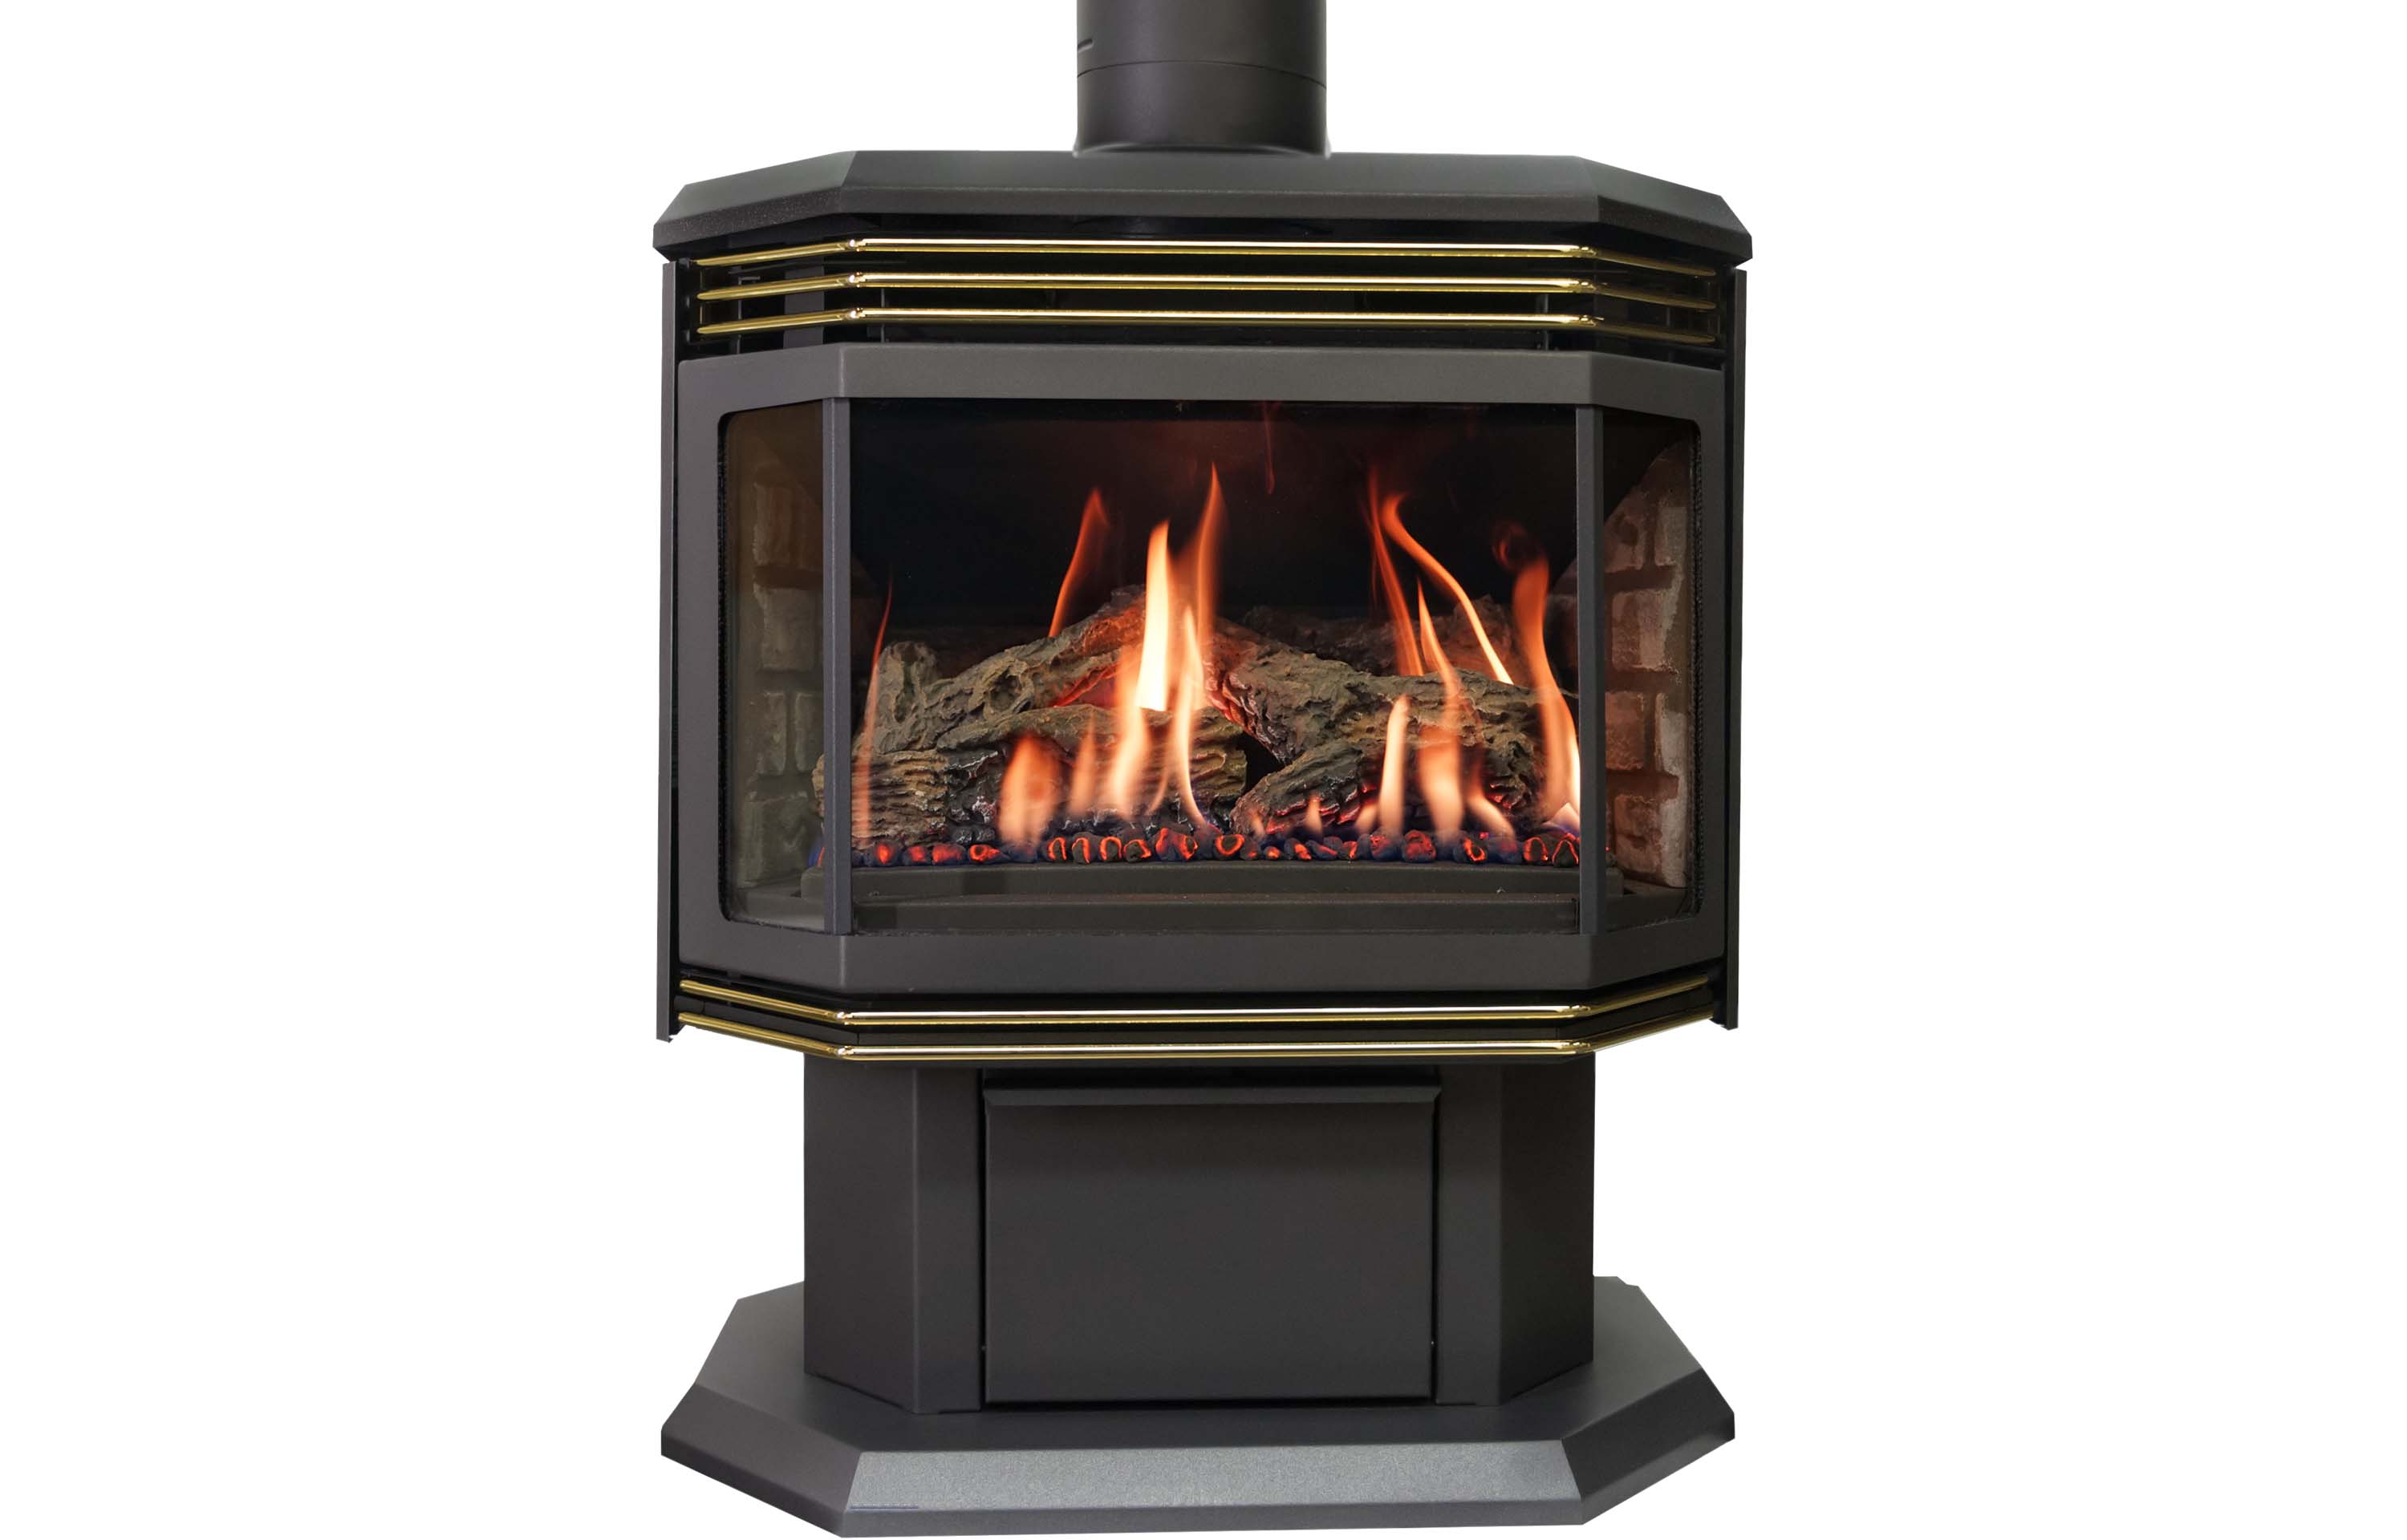 Looking for an expert for Gas fireplace installation? Call Washington Energy Services Lynnwood at 800-398-4663 or visit our website today for more details.